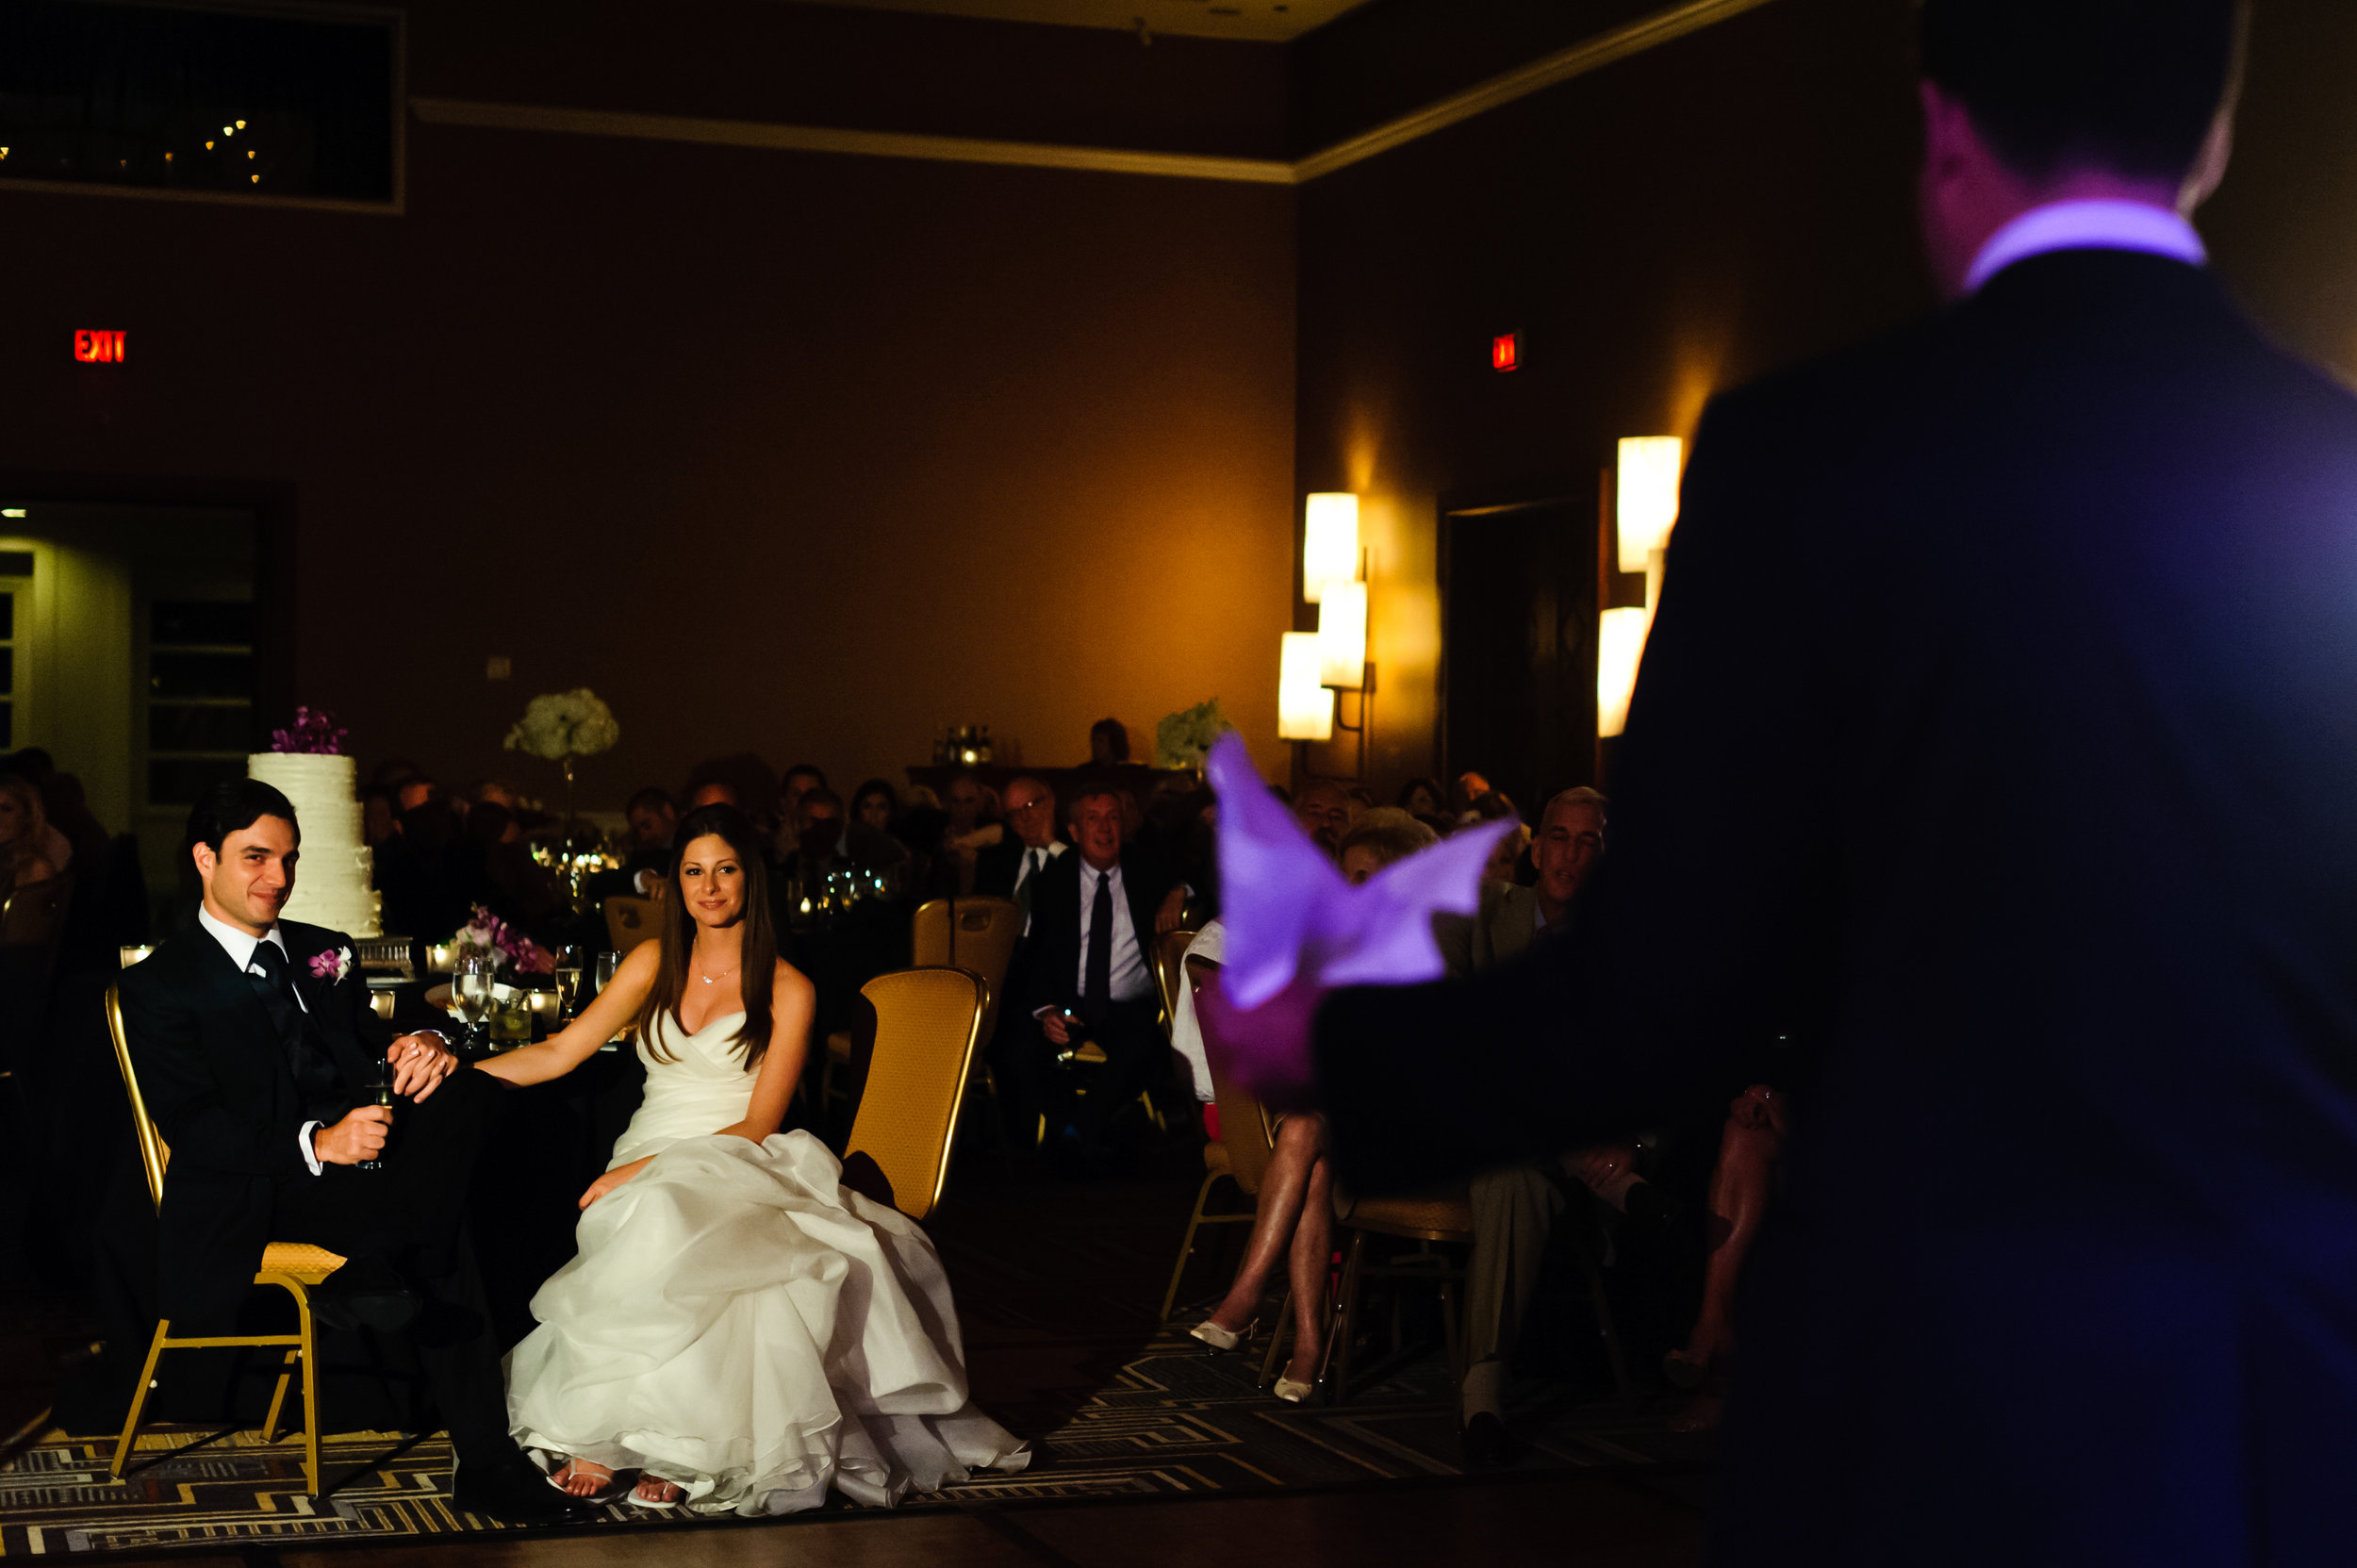 33  bride and groom first dance bride and groom on dance floor special moment with bride and groom Sergio Photography Life Design Events.JPG